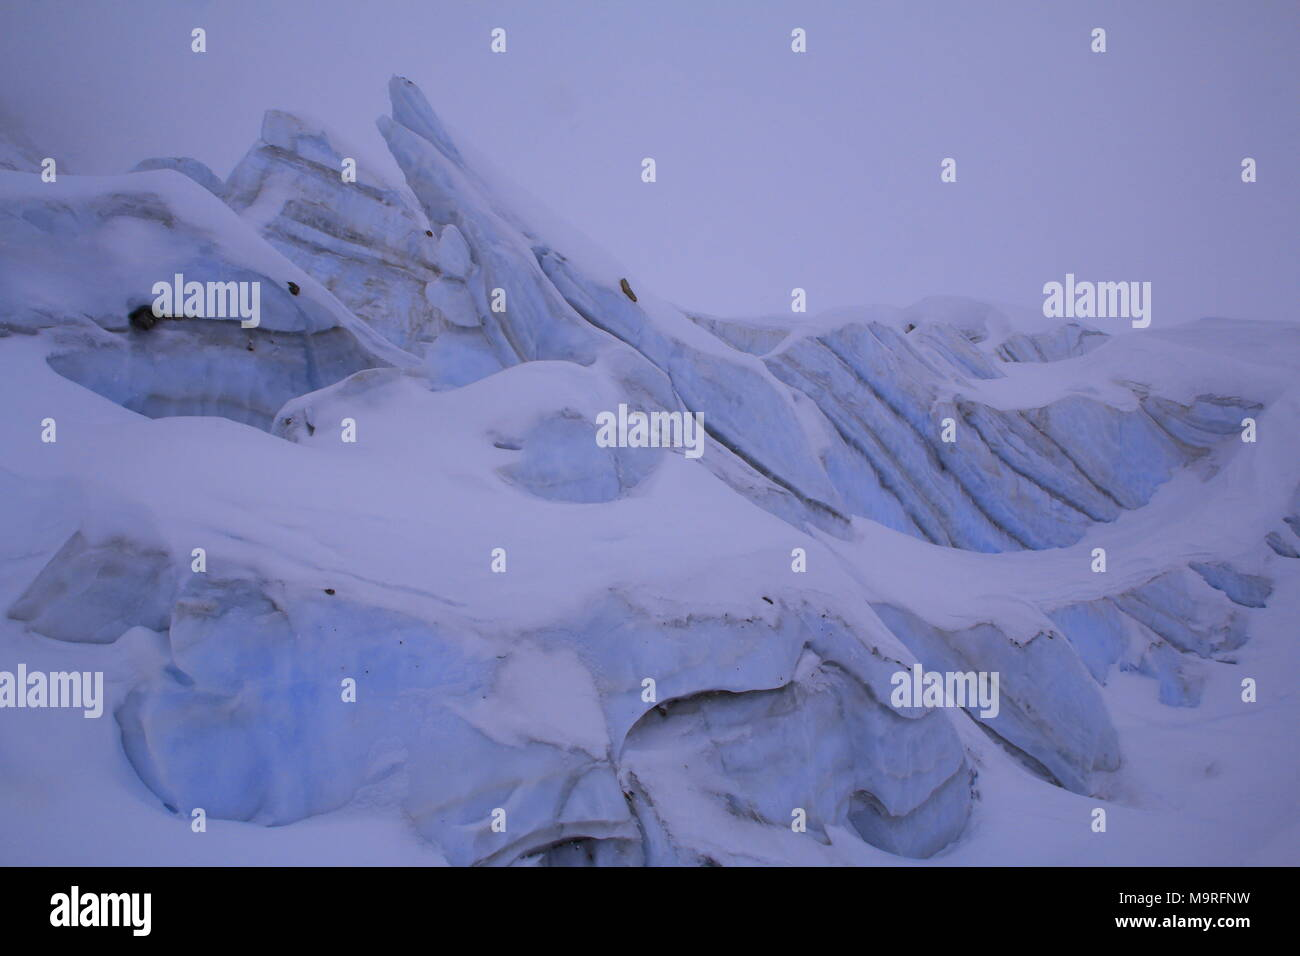 icefall at the glacier - Stock Image